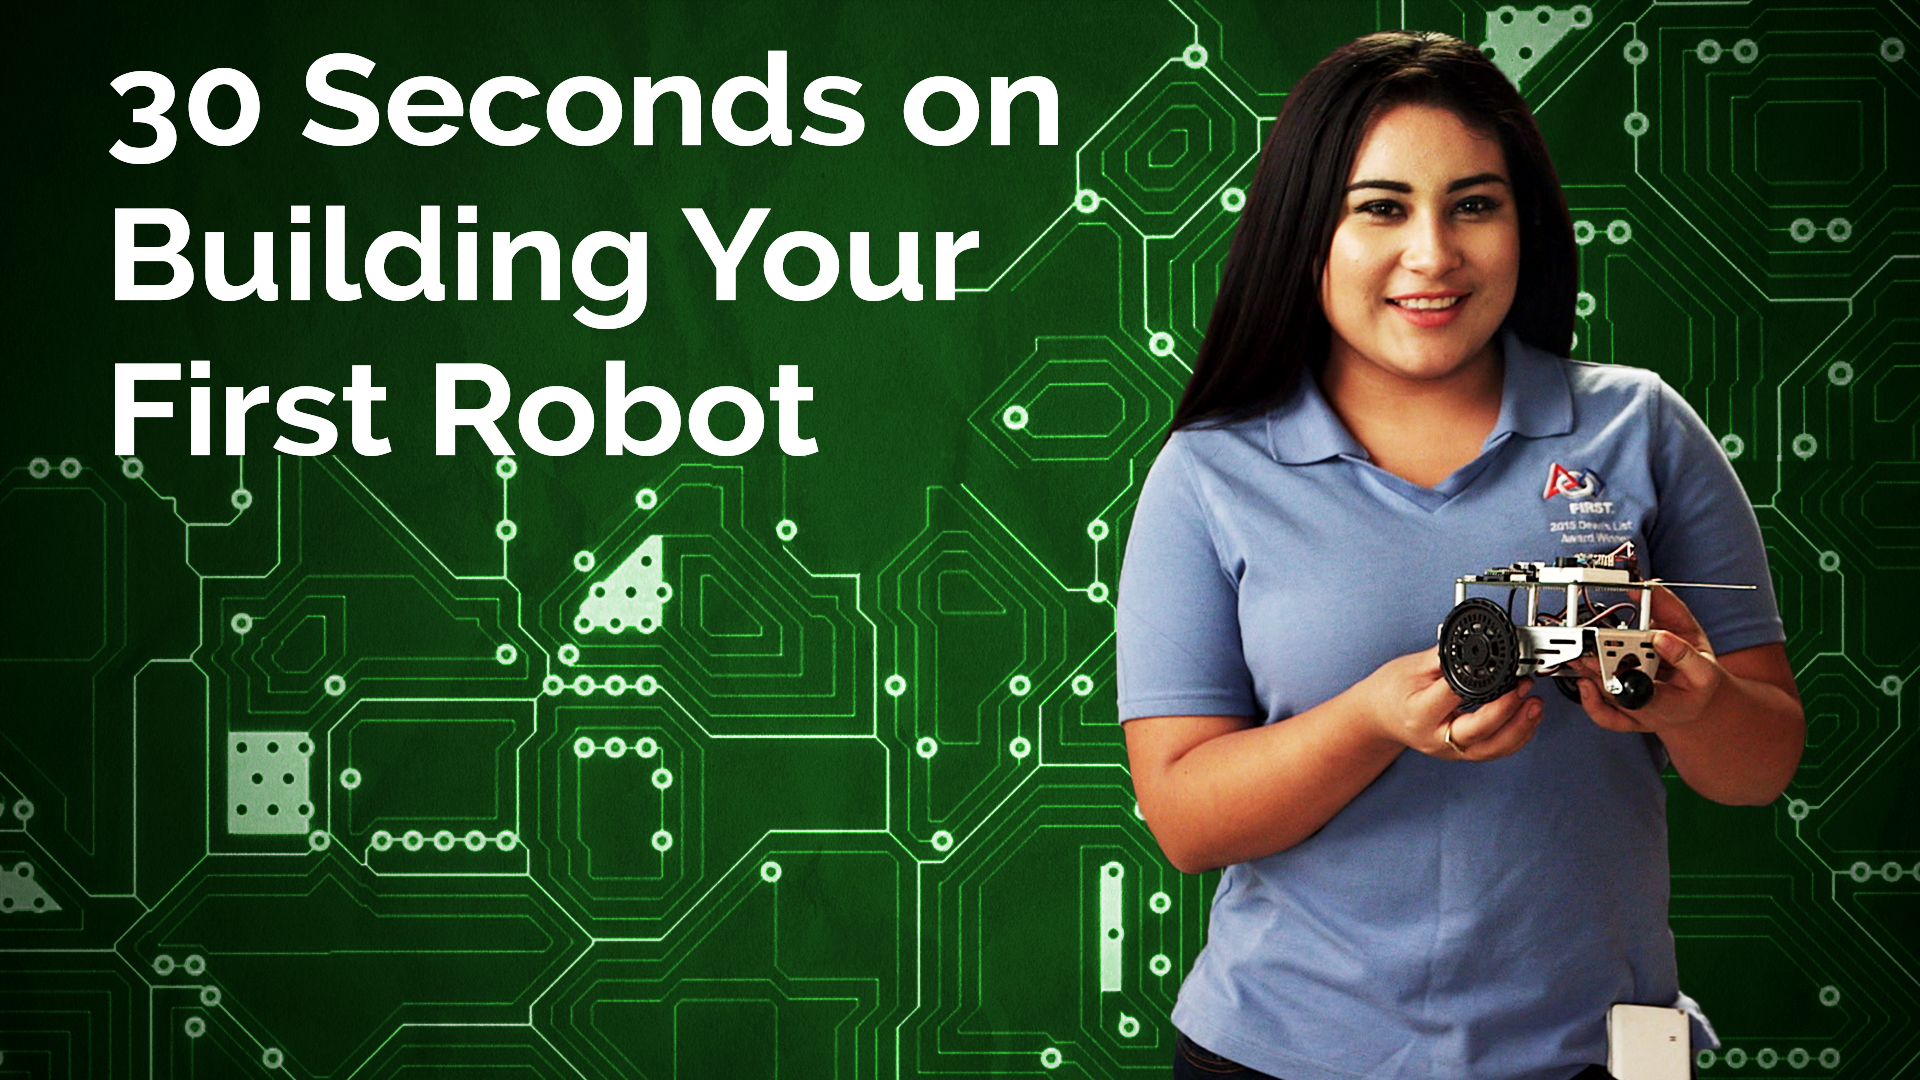 Cynthia Erenas: 30 Seconds on Building Your First Robot Hero